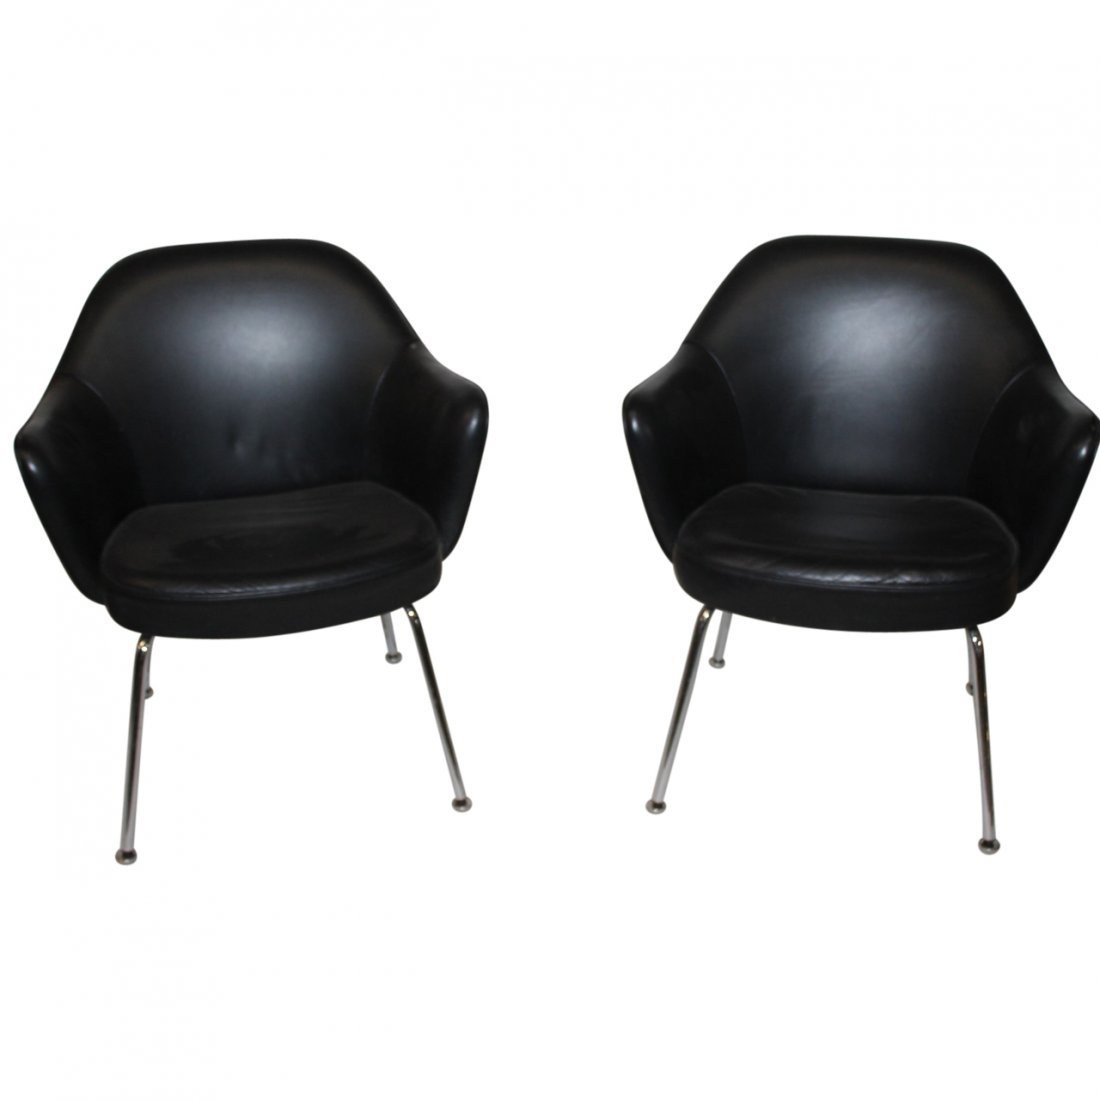 2 Black Upholstered Chrome Arm Chairs Attributed Knoll